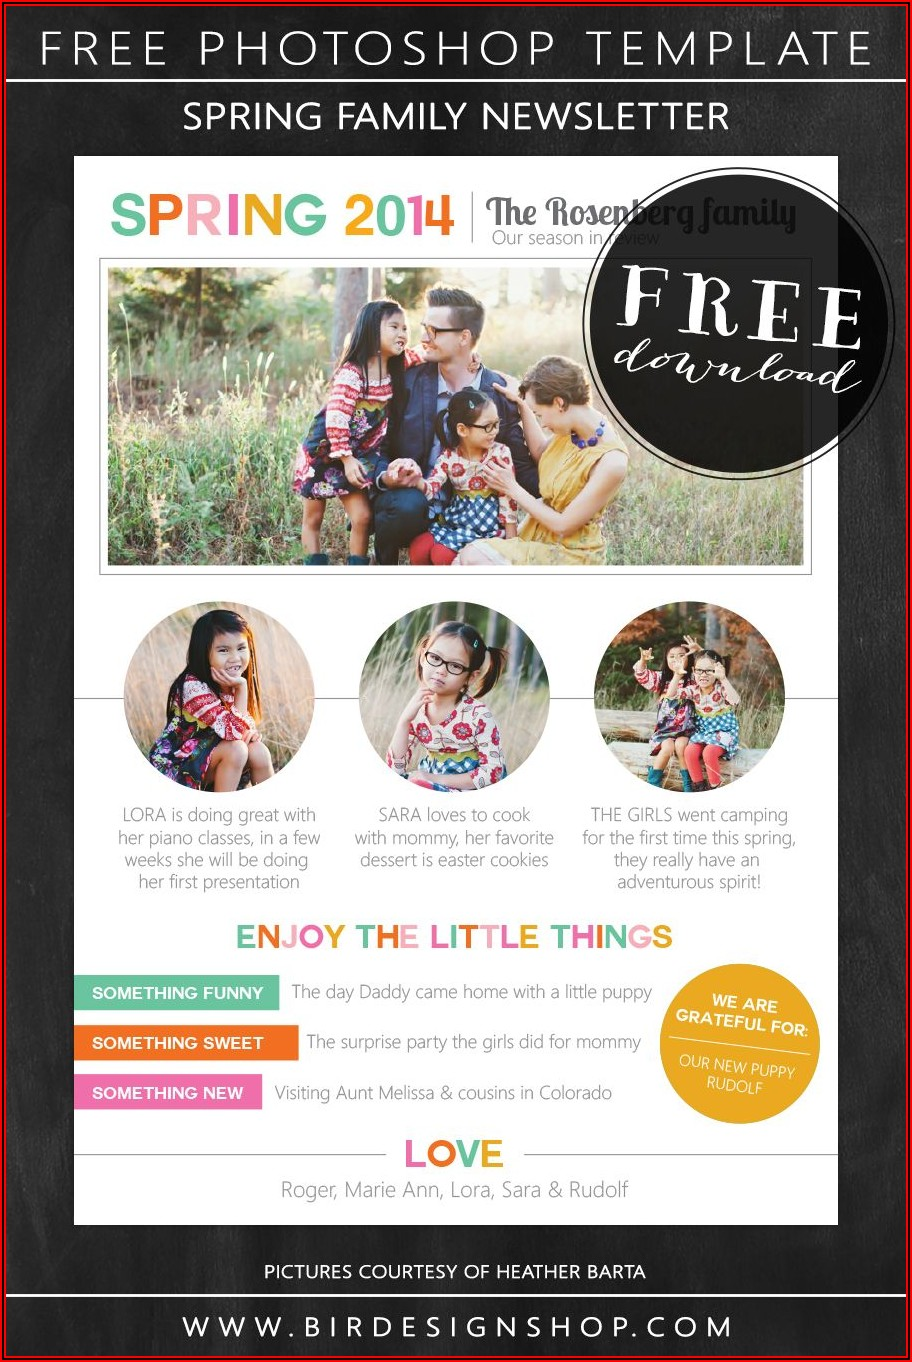 Newsletter Template Photoshop